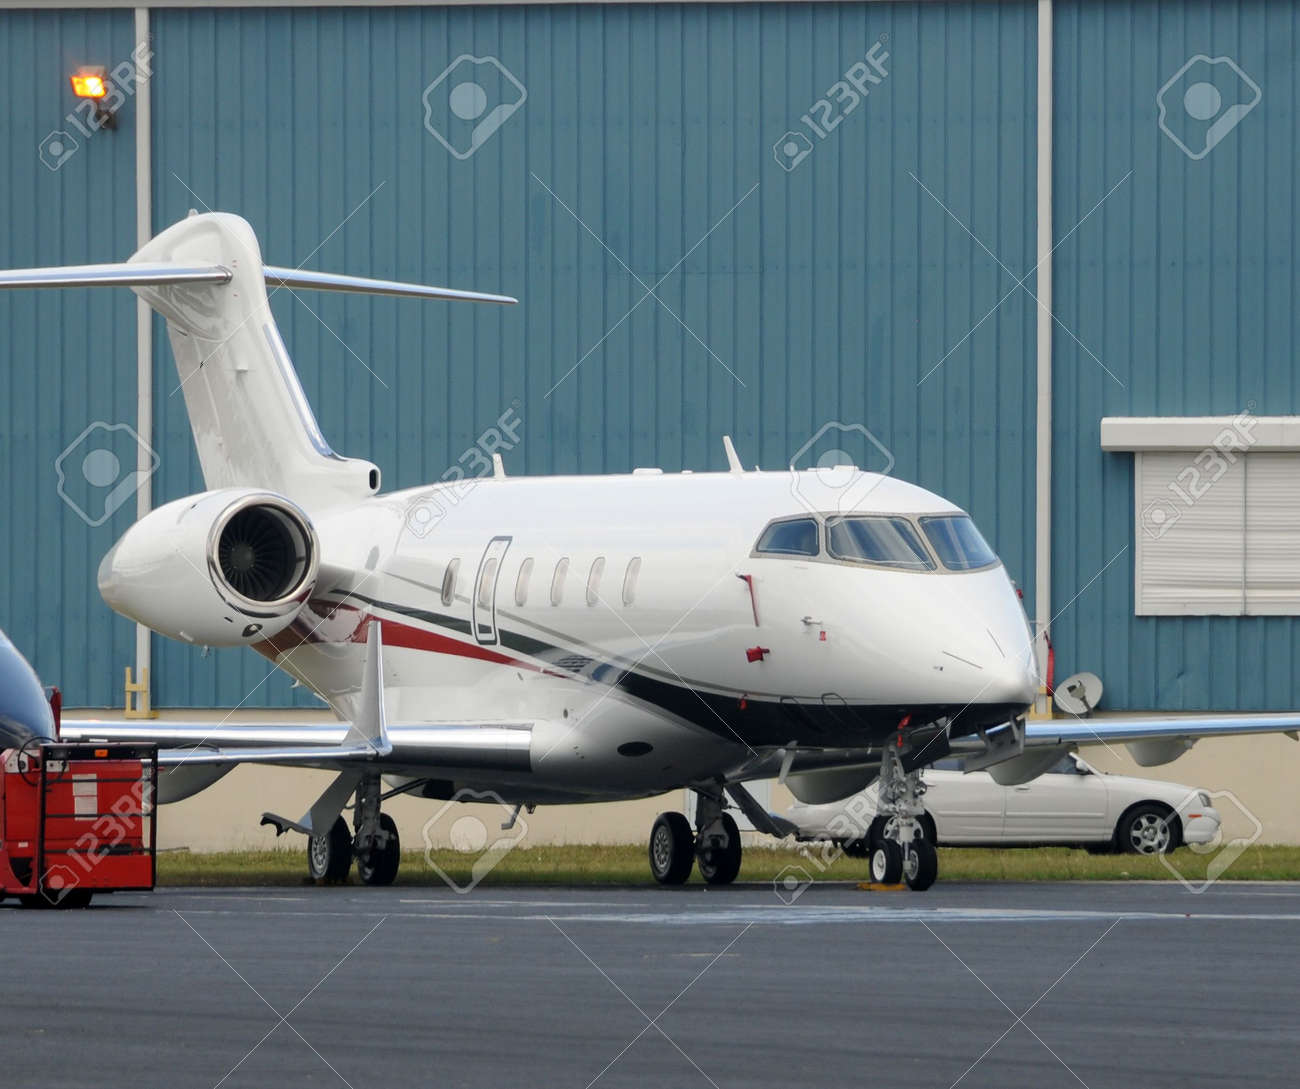 Luxury private jet parked near airport hangar Stock Photo - 6523721